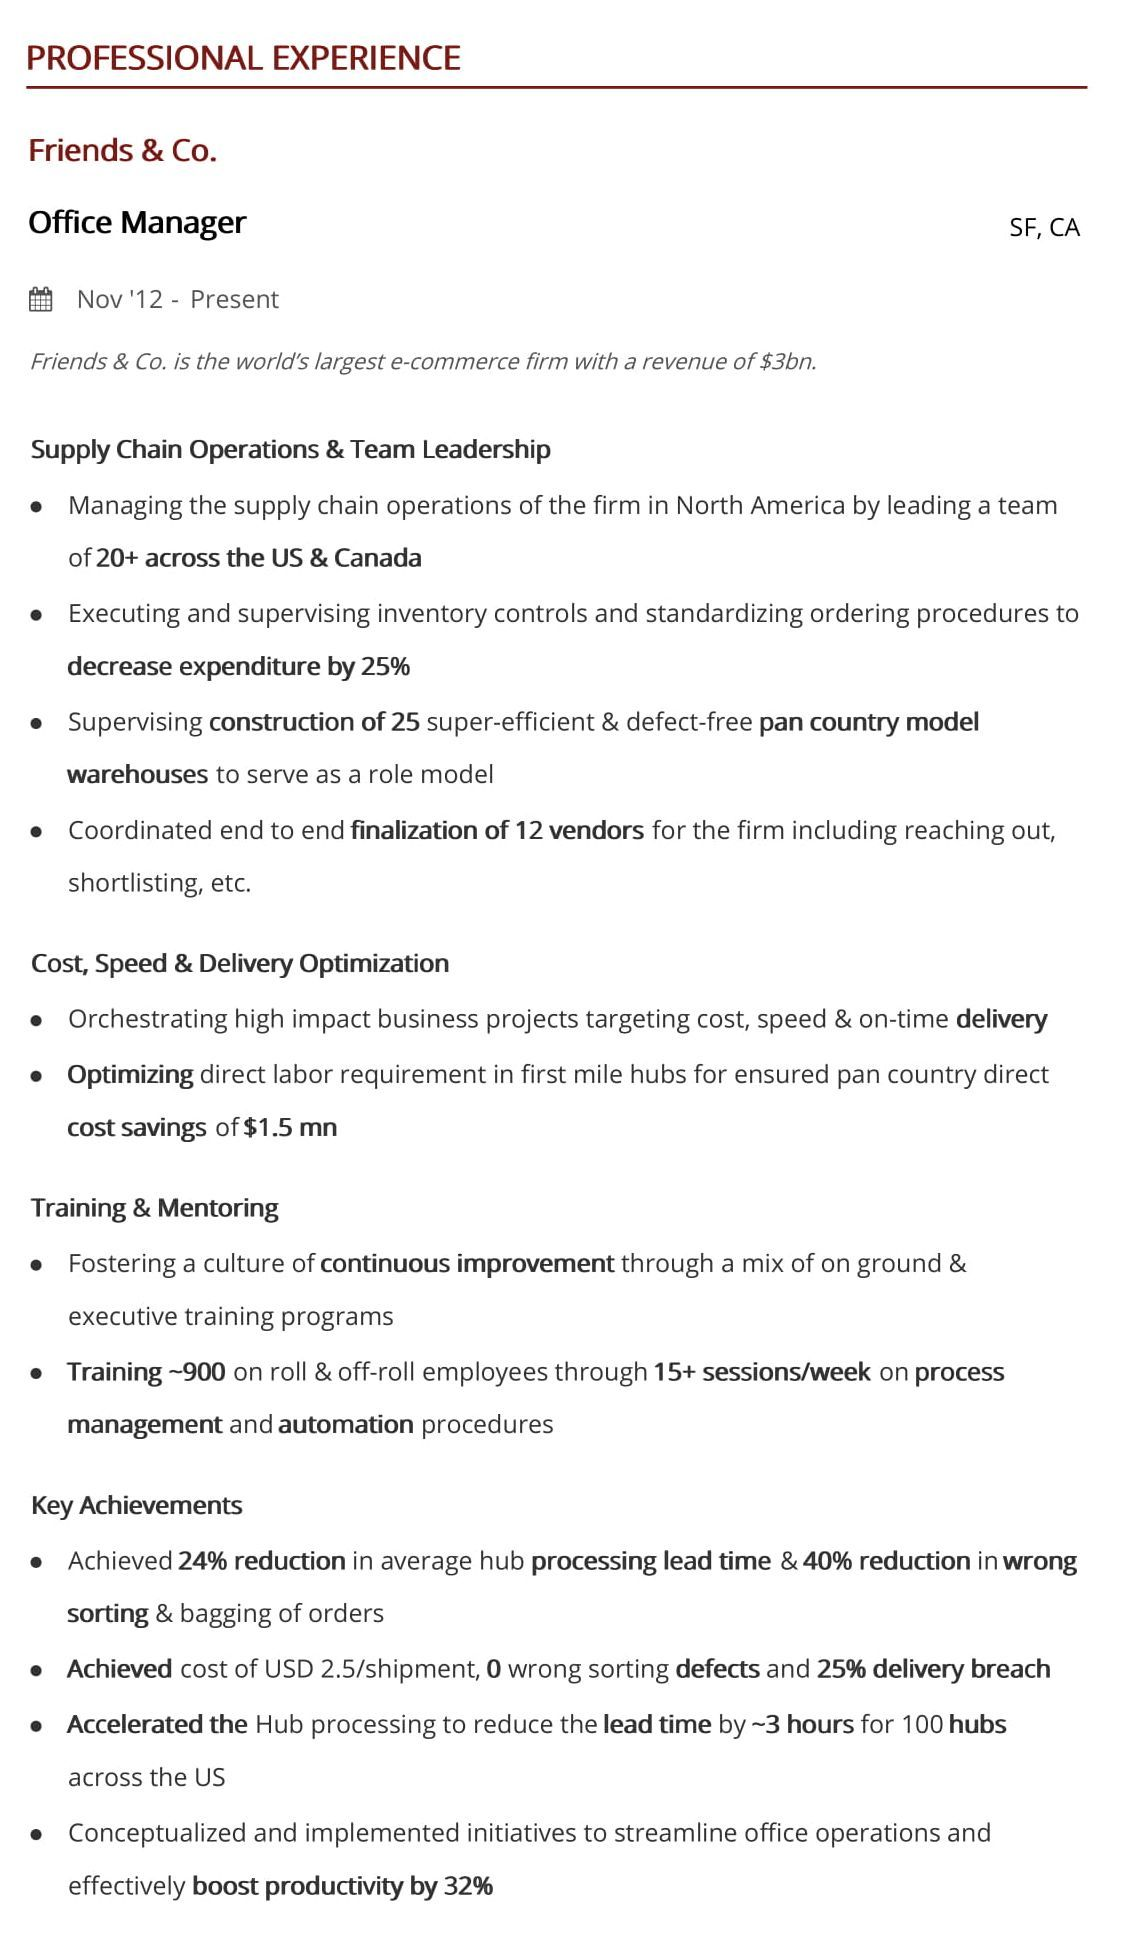 office manager resume step guide with samples examples hiration sample professional Resume Office Manager Resume Examples 2019